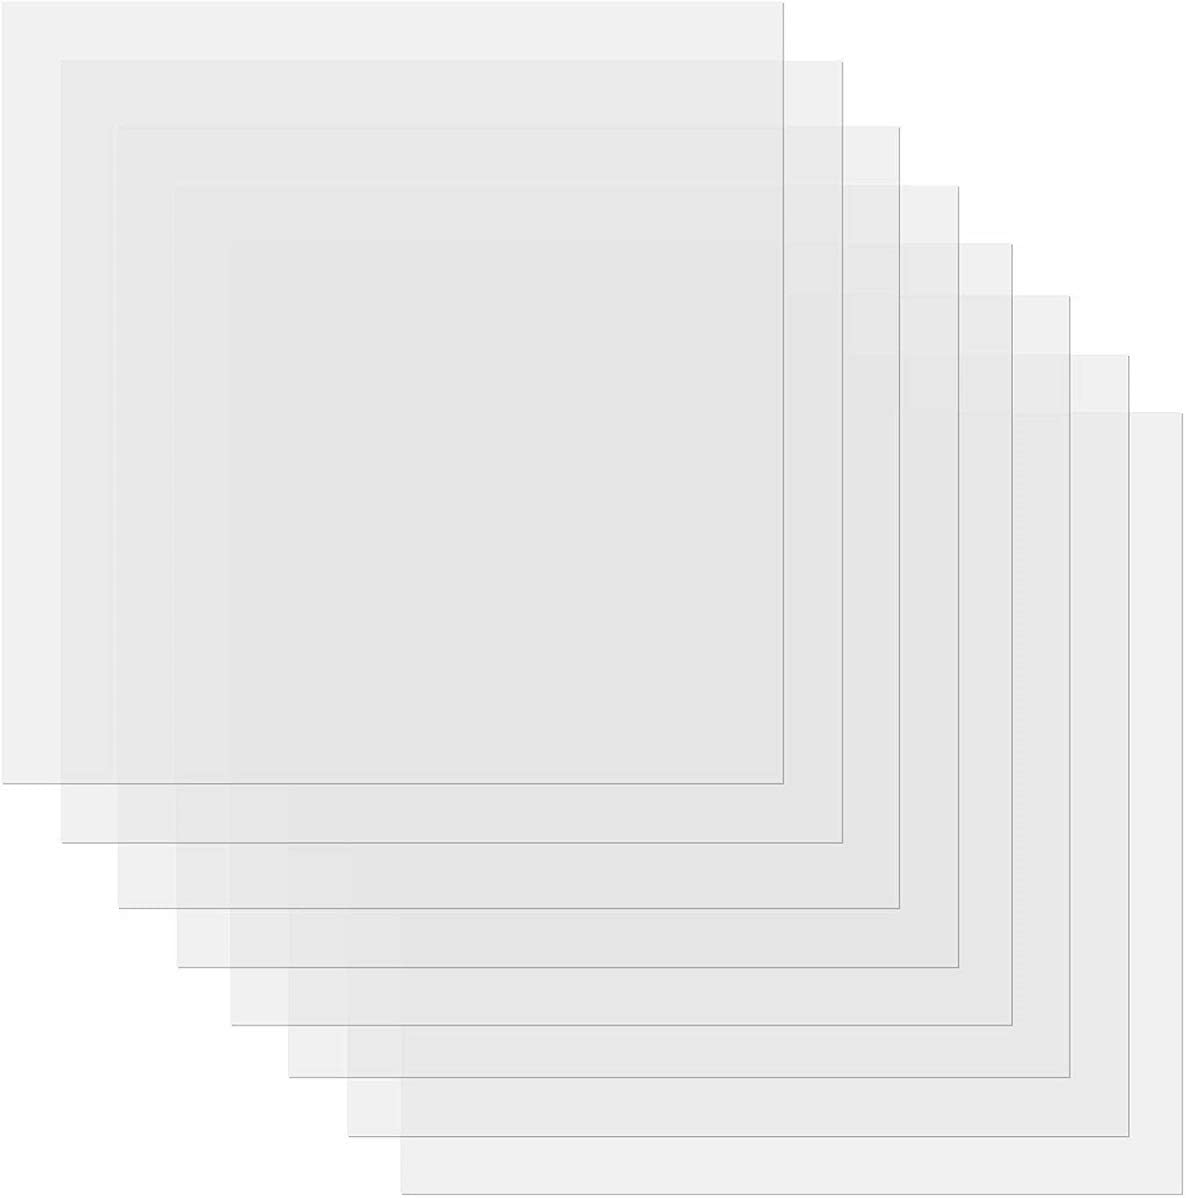 6 mil Clear Stencil Sheets 12 X 12 Inch - 15 Pieces - Craft Plastic, Blank Mylar Templates, Square Blank Stencil Material Mylar Template Sheets for Stencils